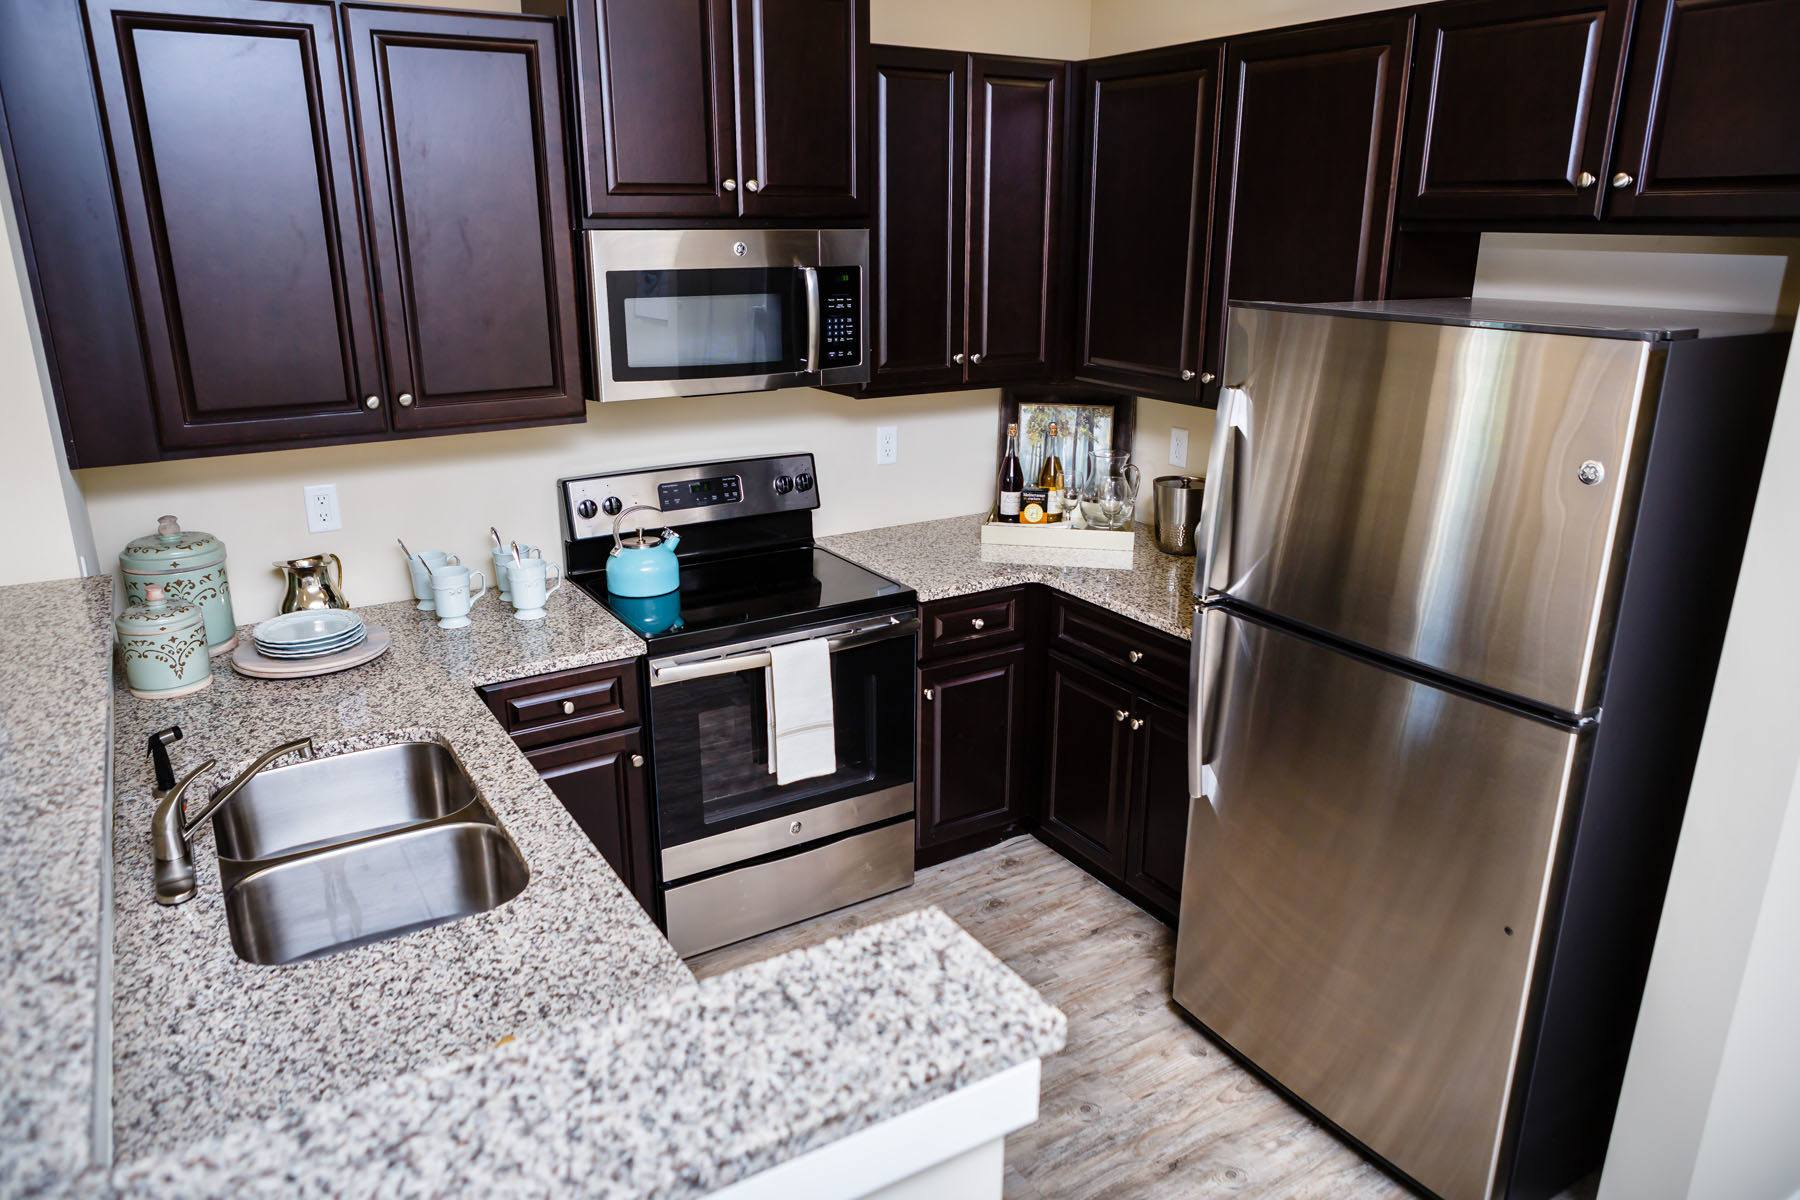 1 Bedroom Apartments With Granite Countertops In Tuscaloosa